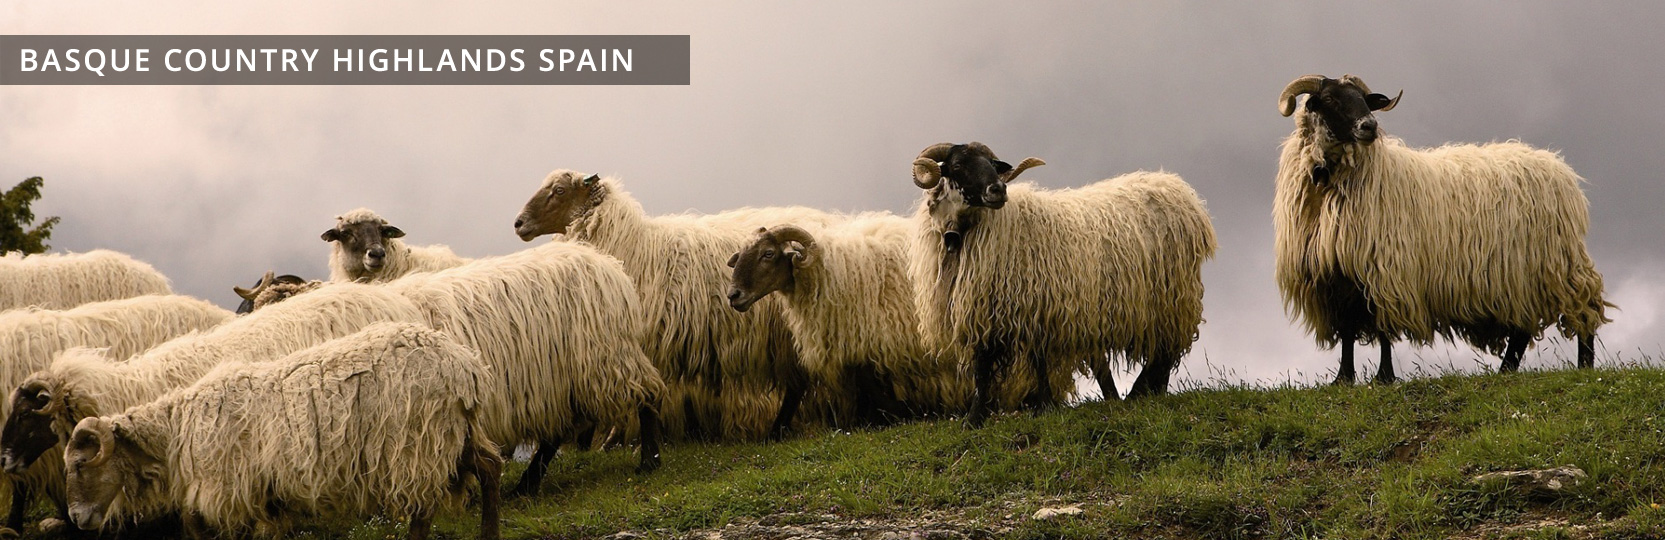 Just Follow Me PAÍS VASCO Highlands Spain